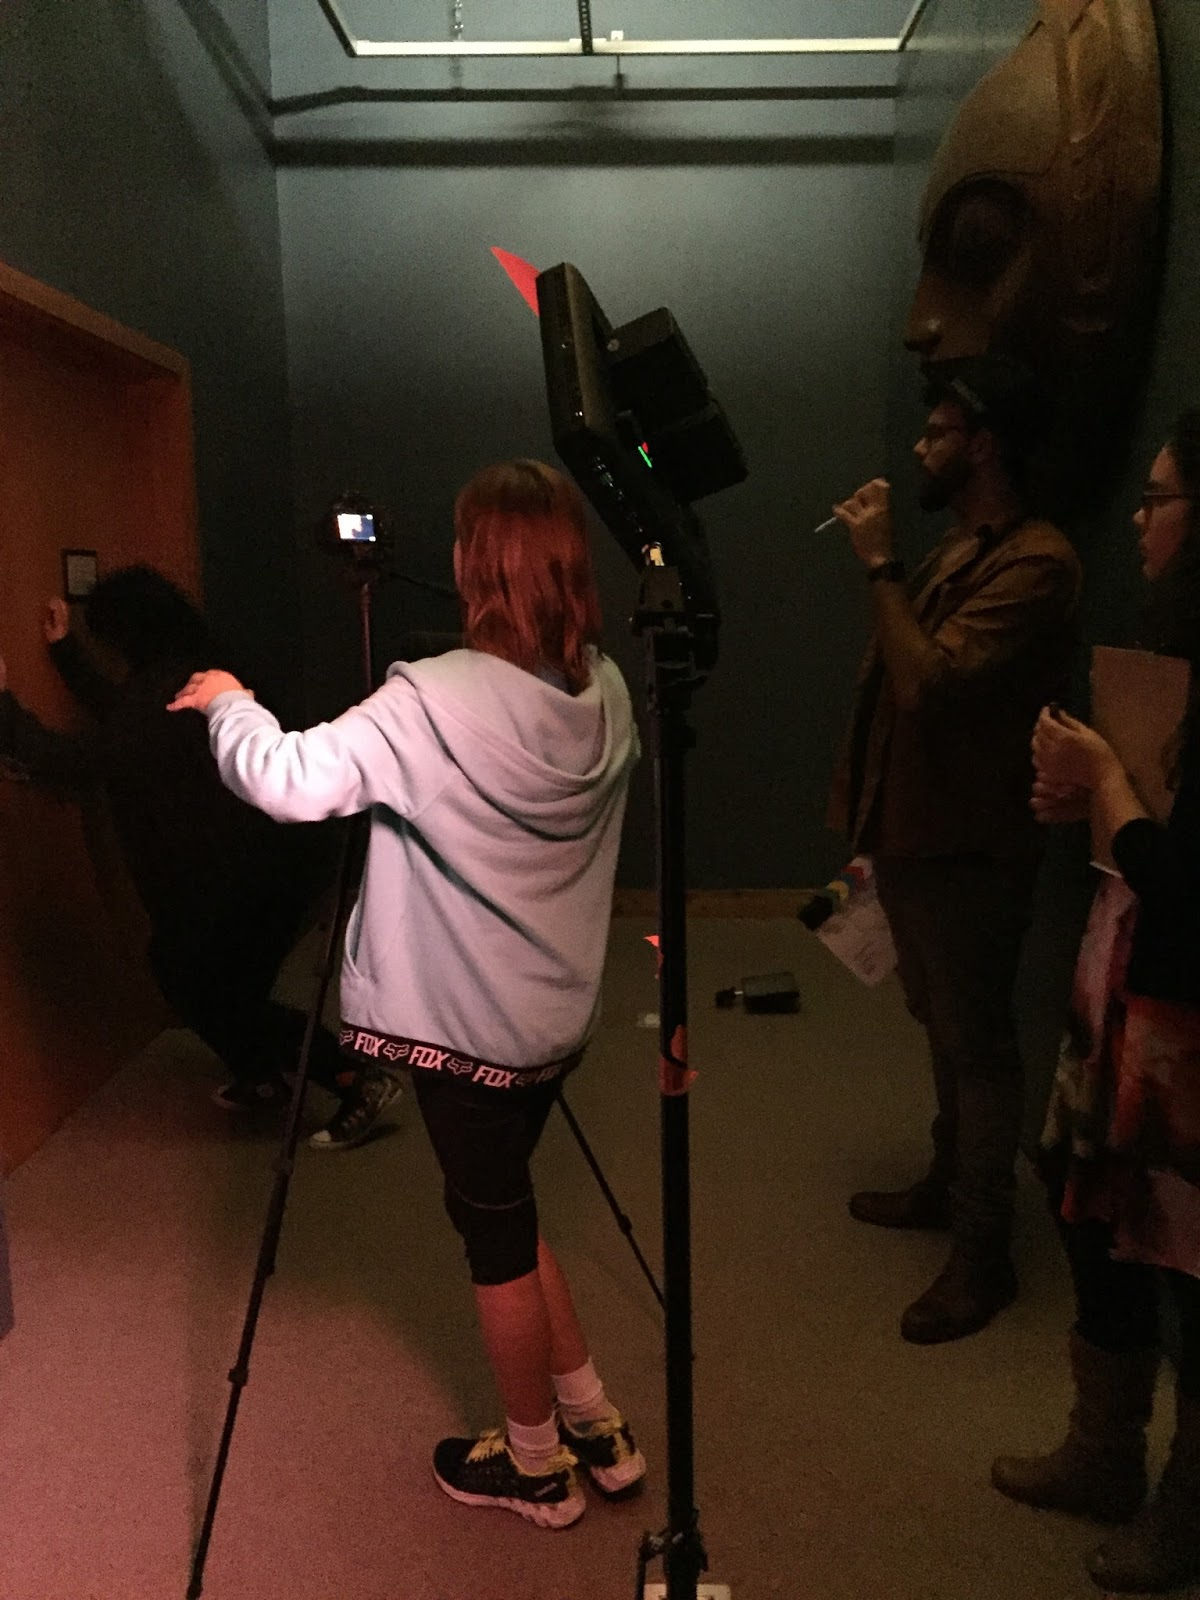 For the final scene of the night, Niccola finds out she is locked inside the museum